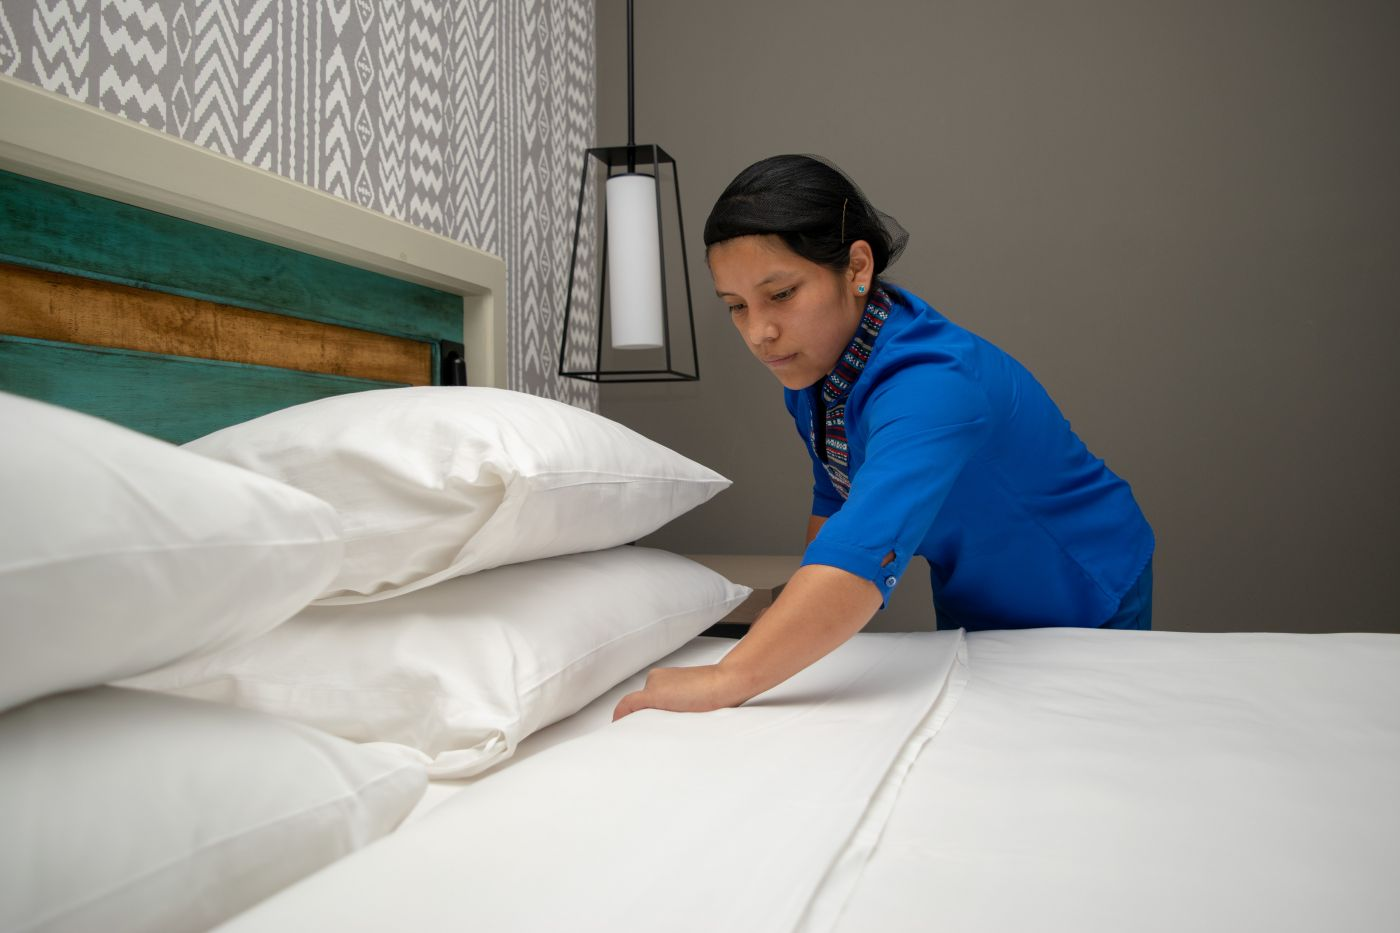 Young hotel housekeeper training how to make a bed. She is a participant of our youth employment programme in Latin America.